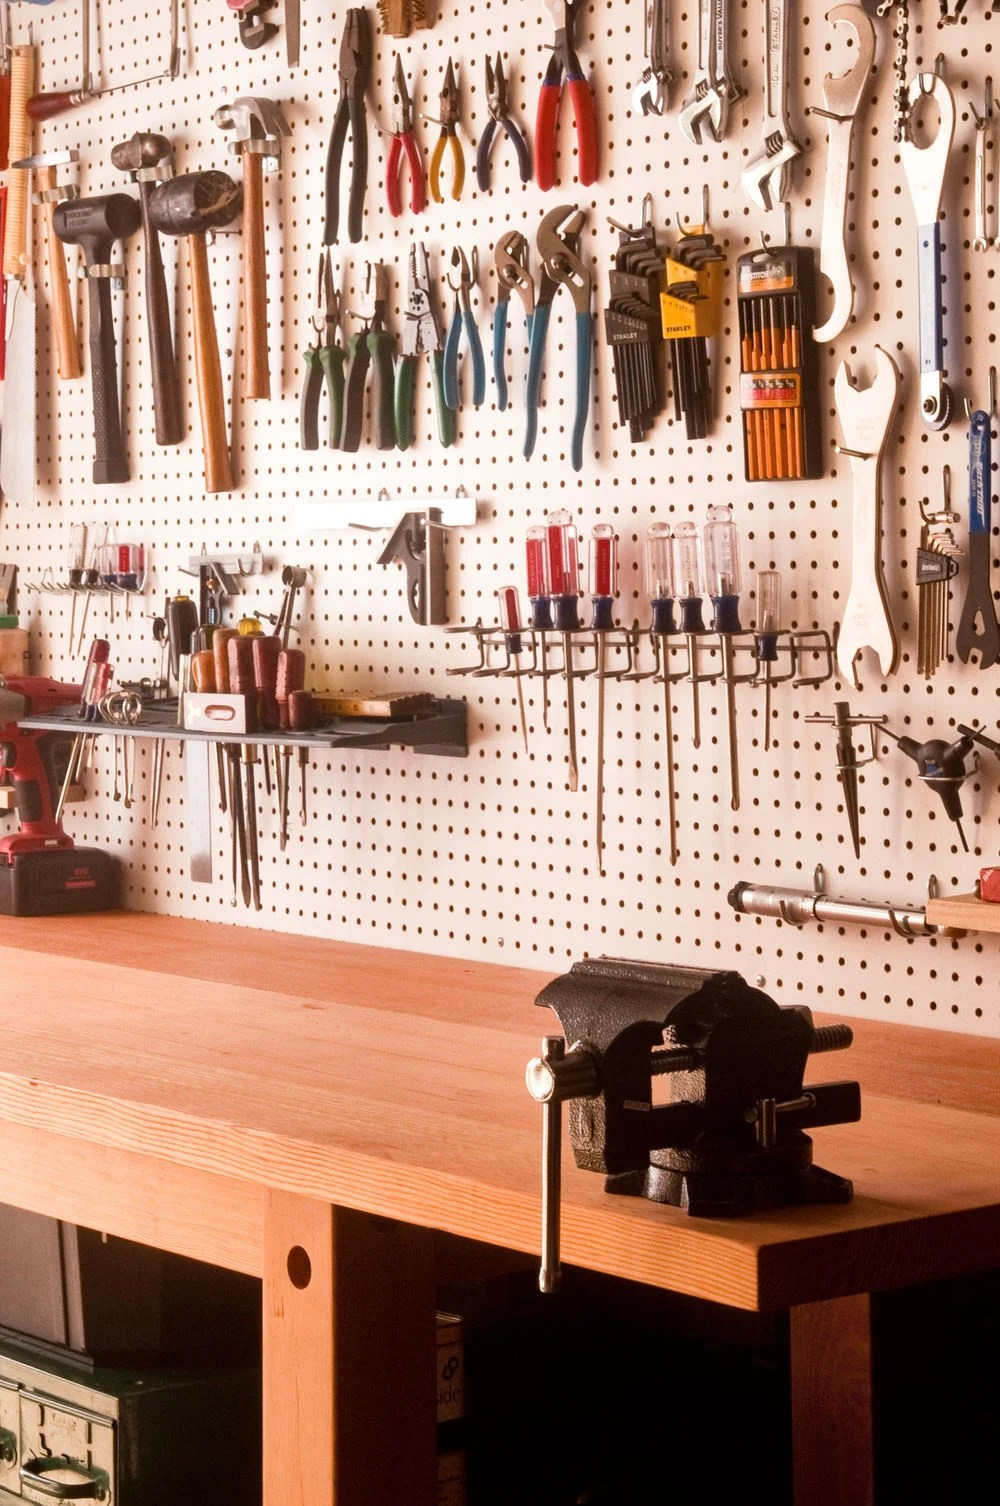 How To Make The Ultimate Garage Workbench Curbly